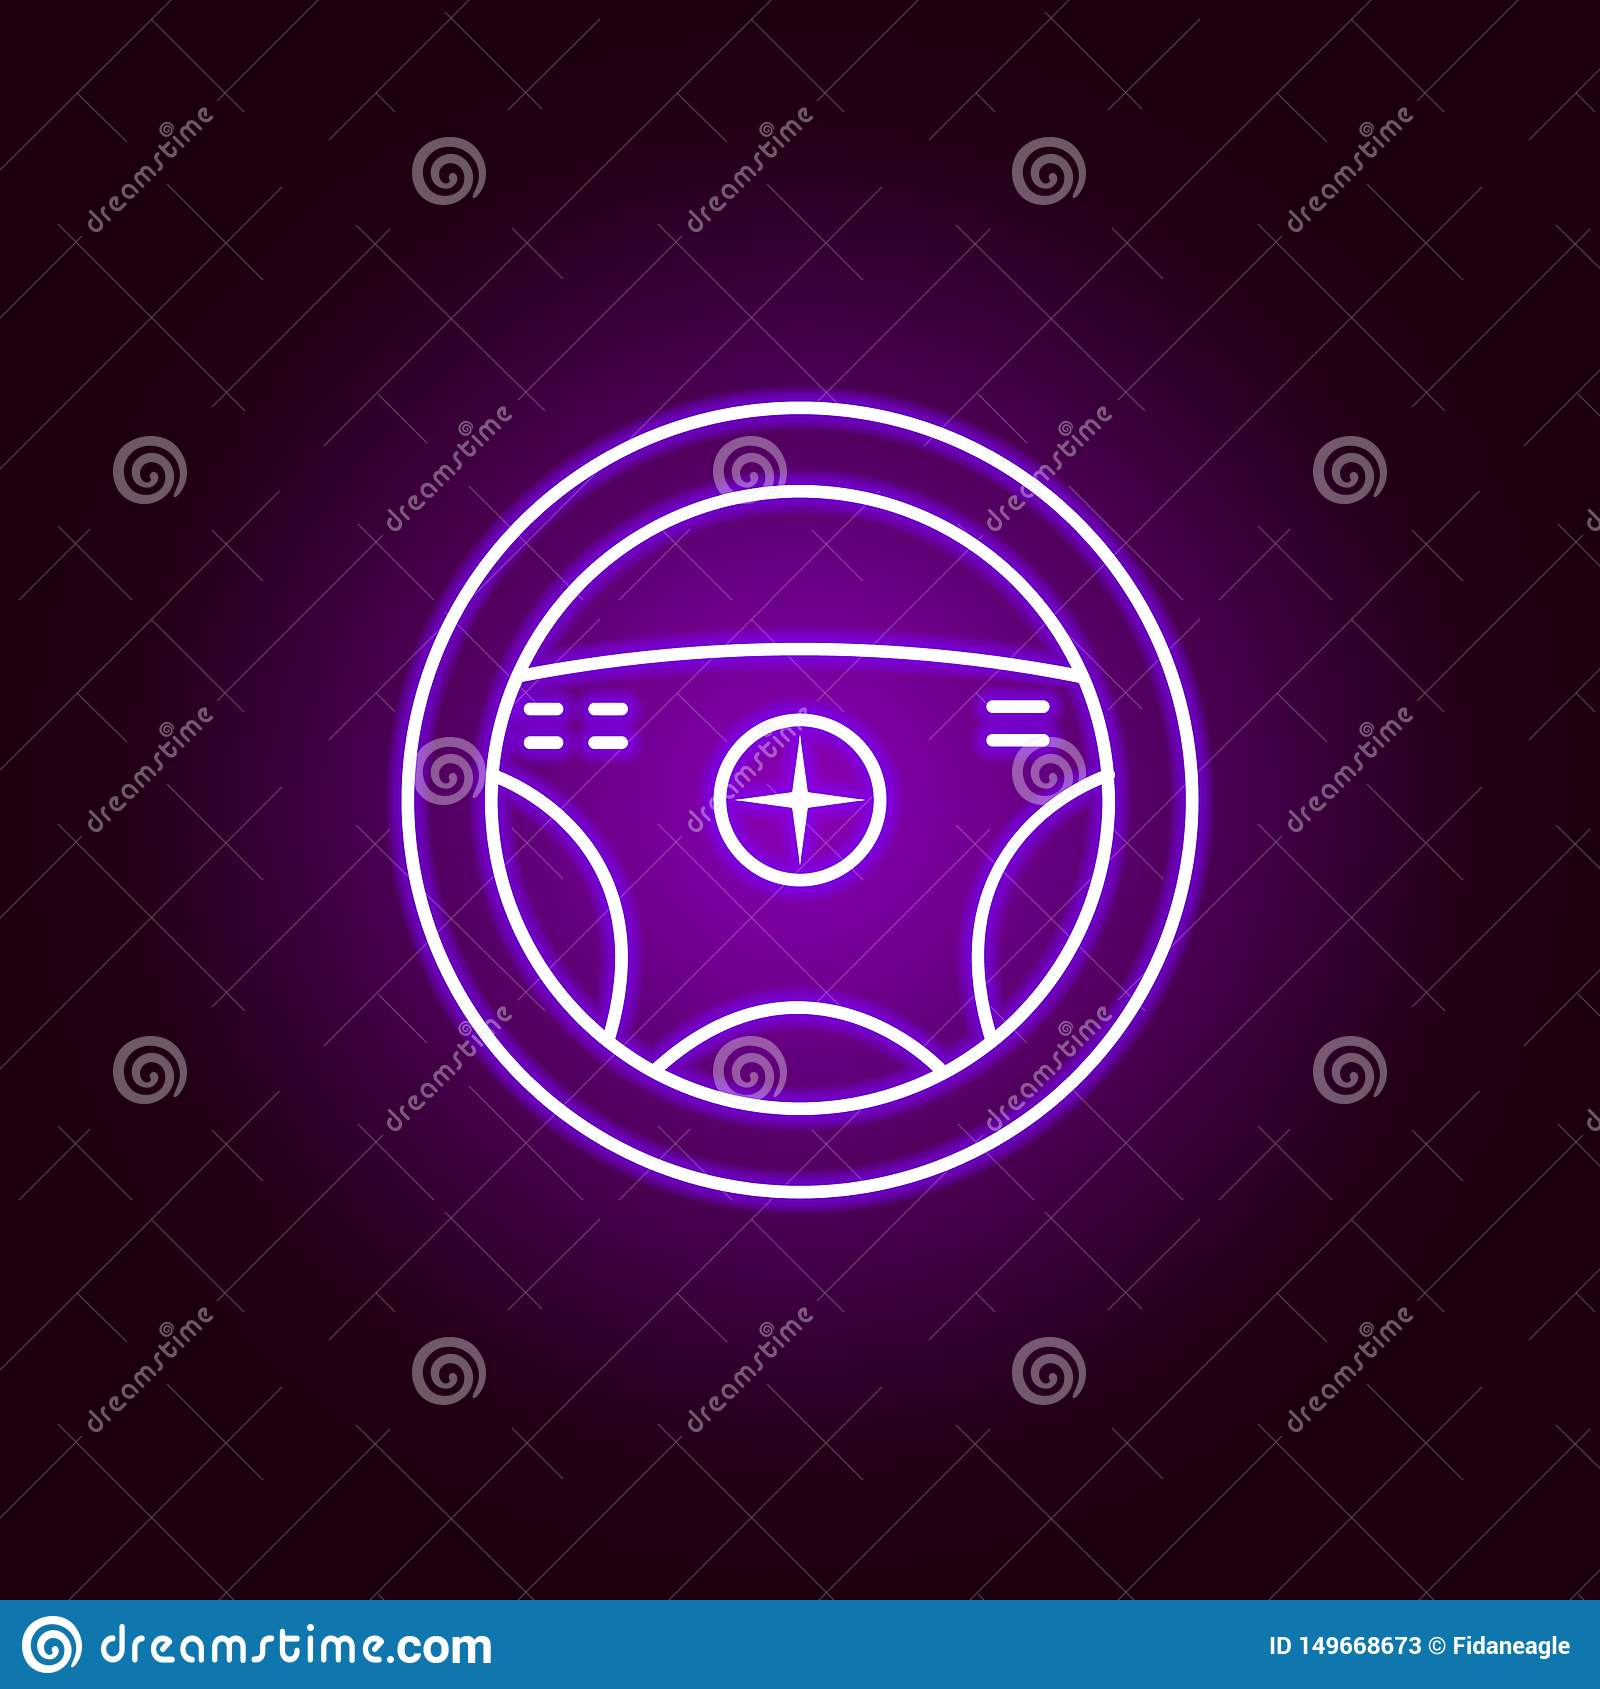 steering wheel outline icon in neon style. Elements of car repair illustration in neon style icon. Signs and symbols can be used